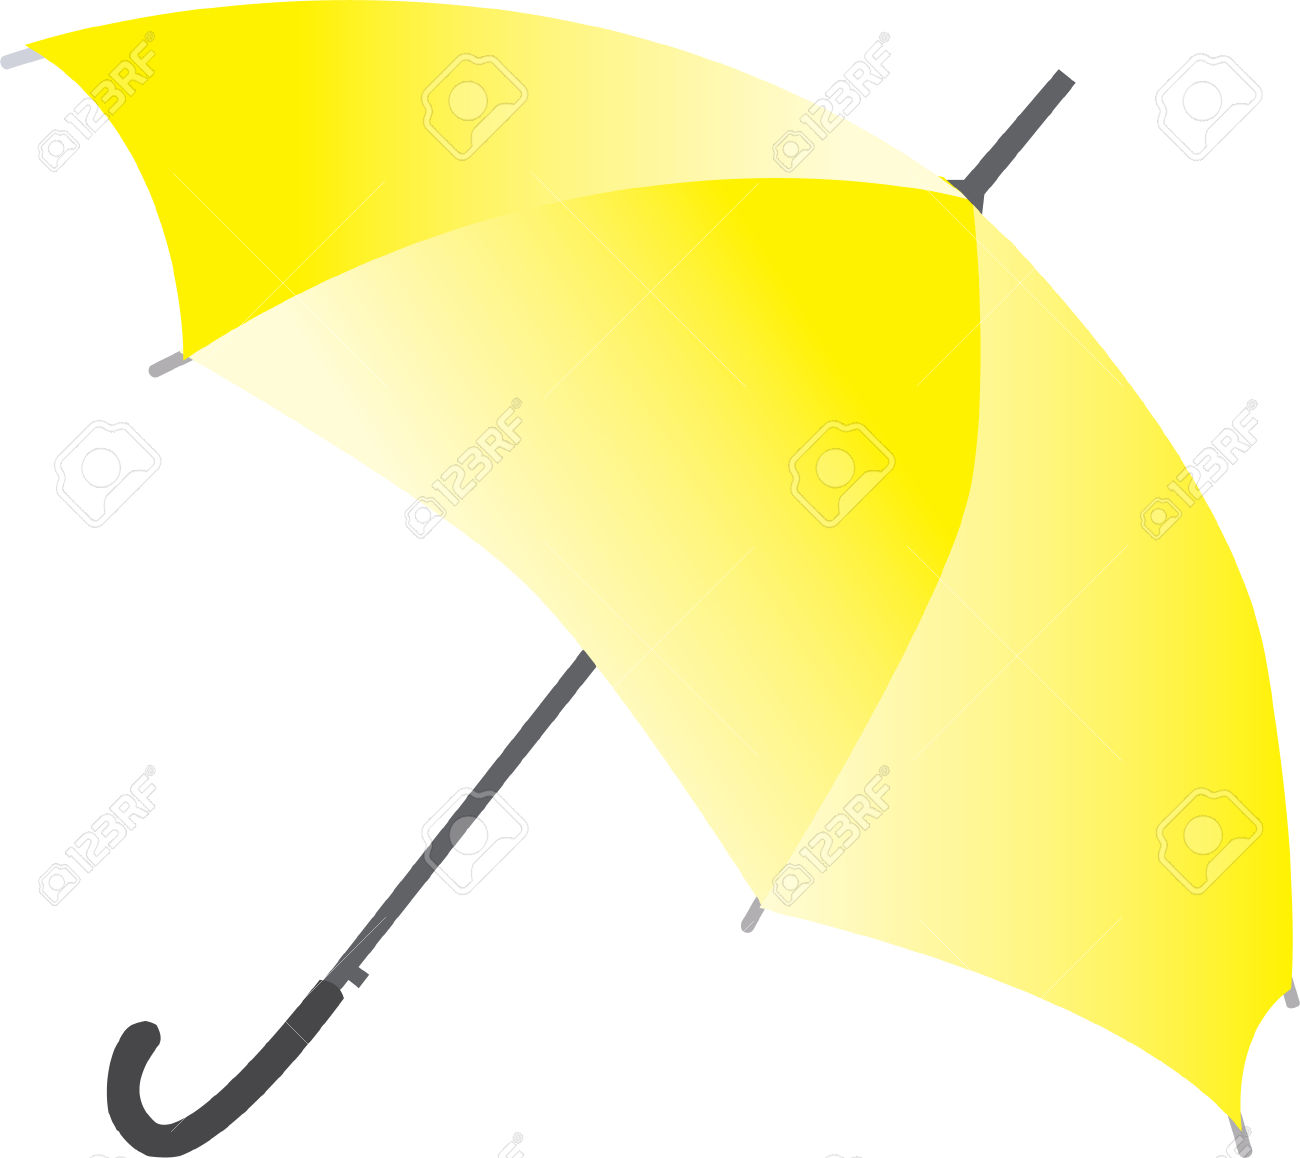 yellow umbrella clipart 20 free Cliparts   Download images ...